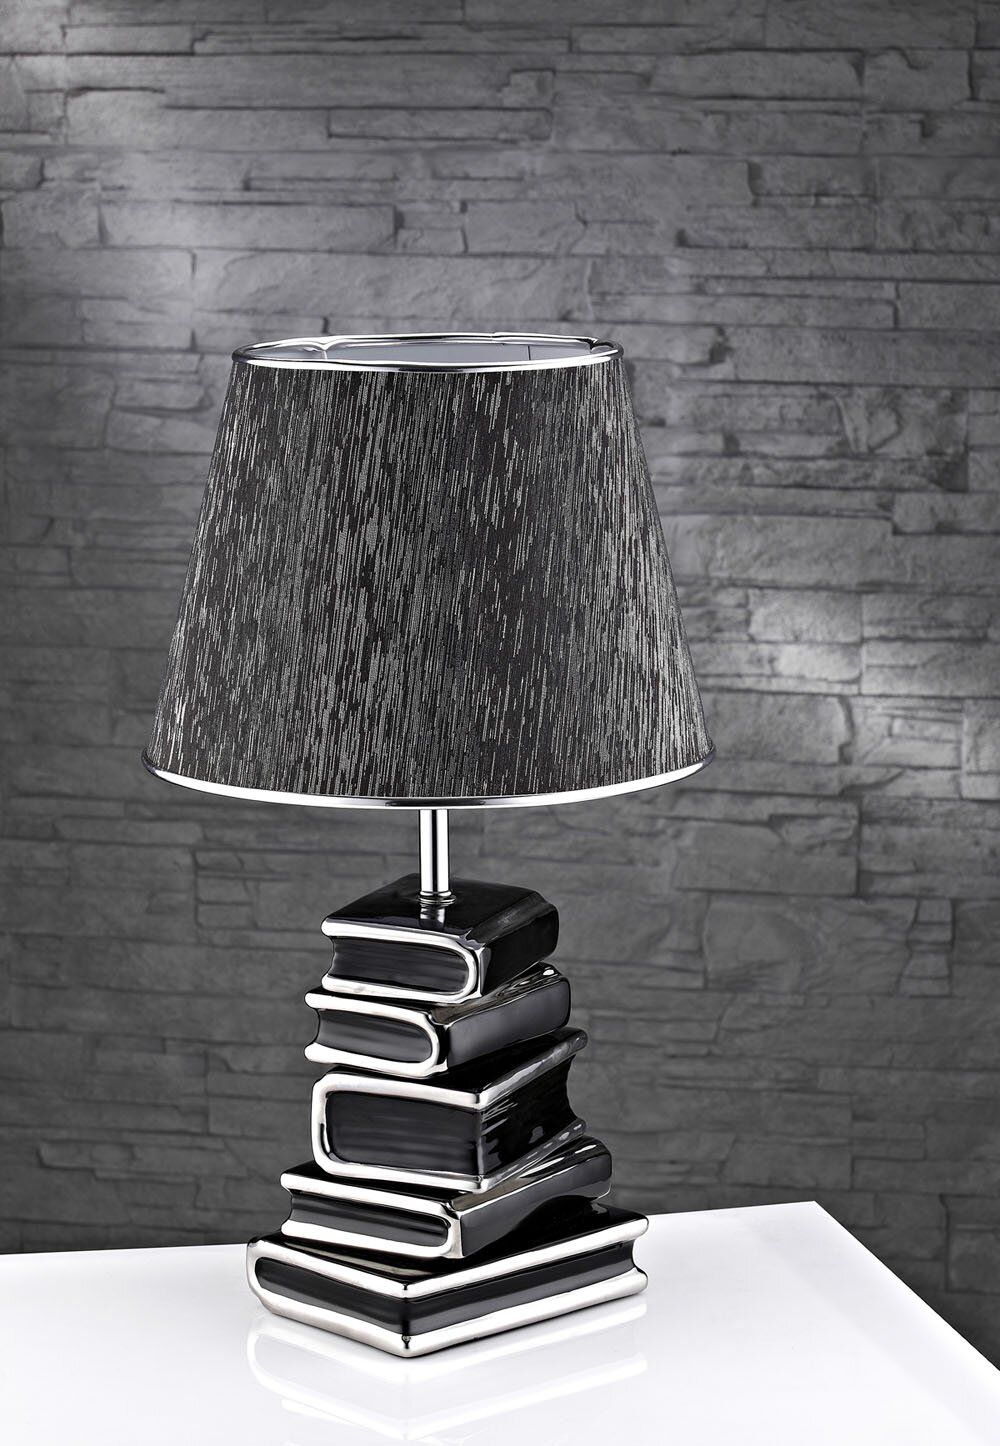 The 18 most beautiful lampshade designs mostbeautifulthings lampshade decor aloadofball Choice Image